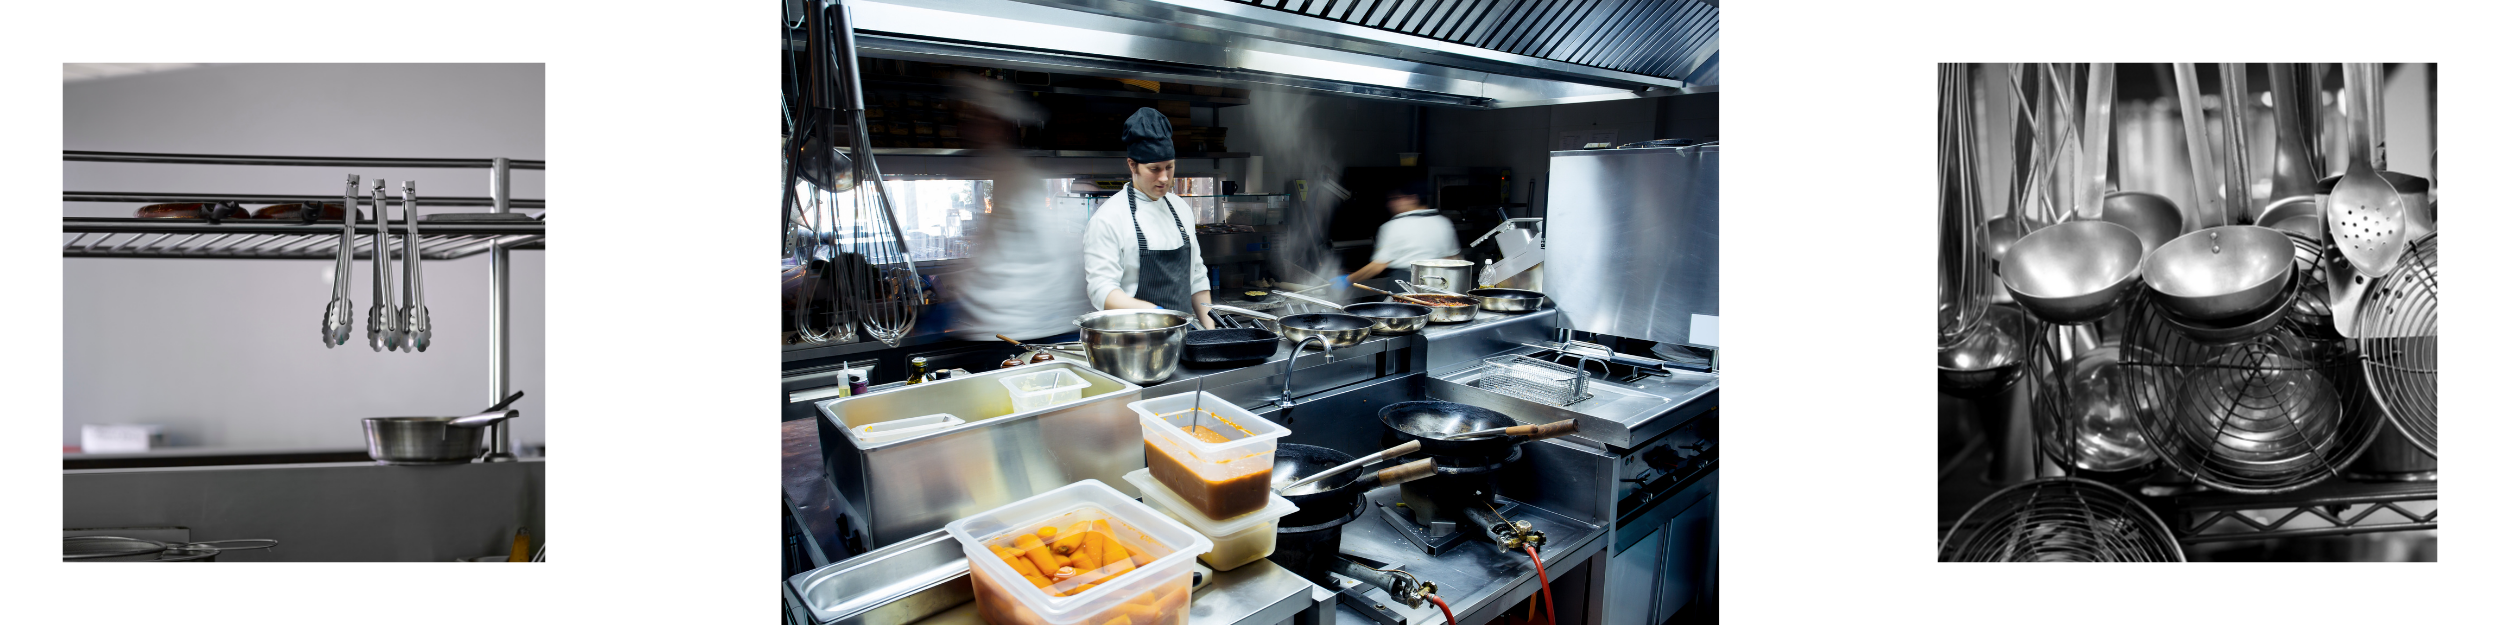 Tongs, frying pans, ladles, skimmers and busy foodservice kitchen